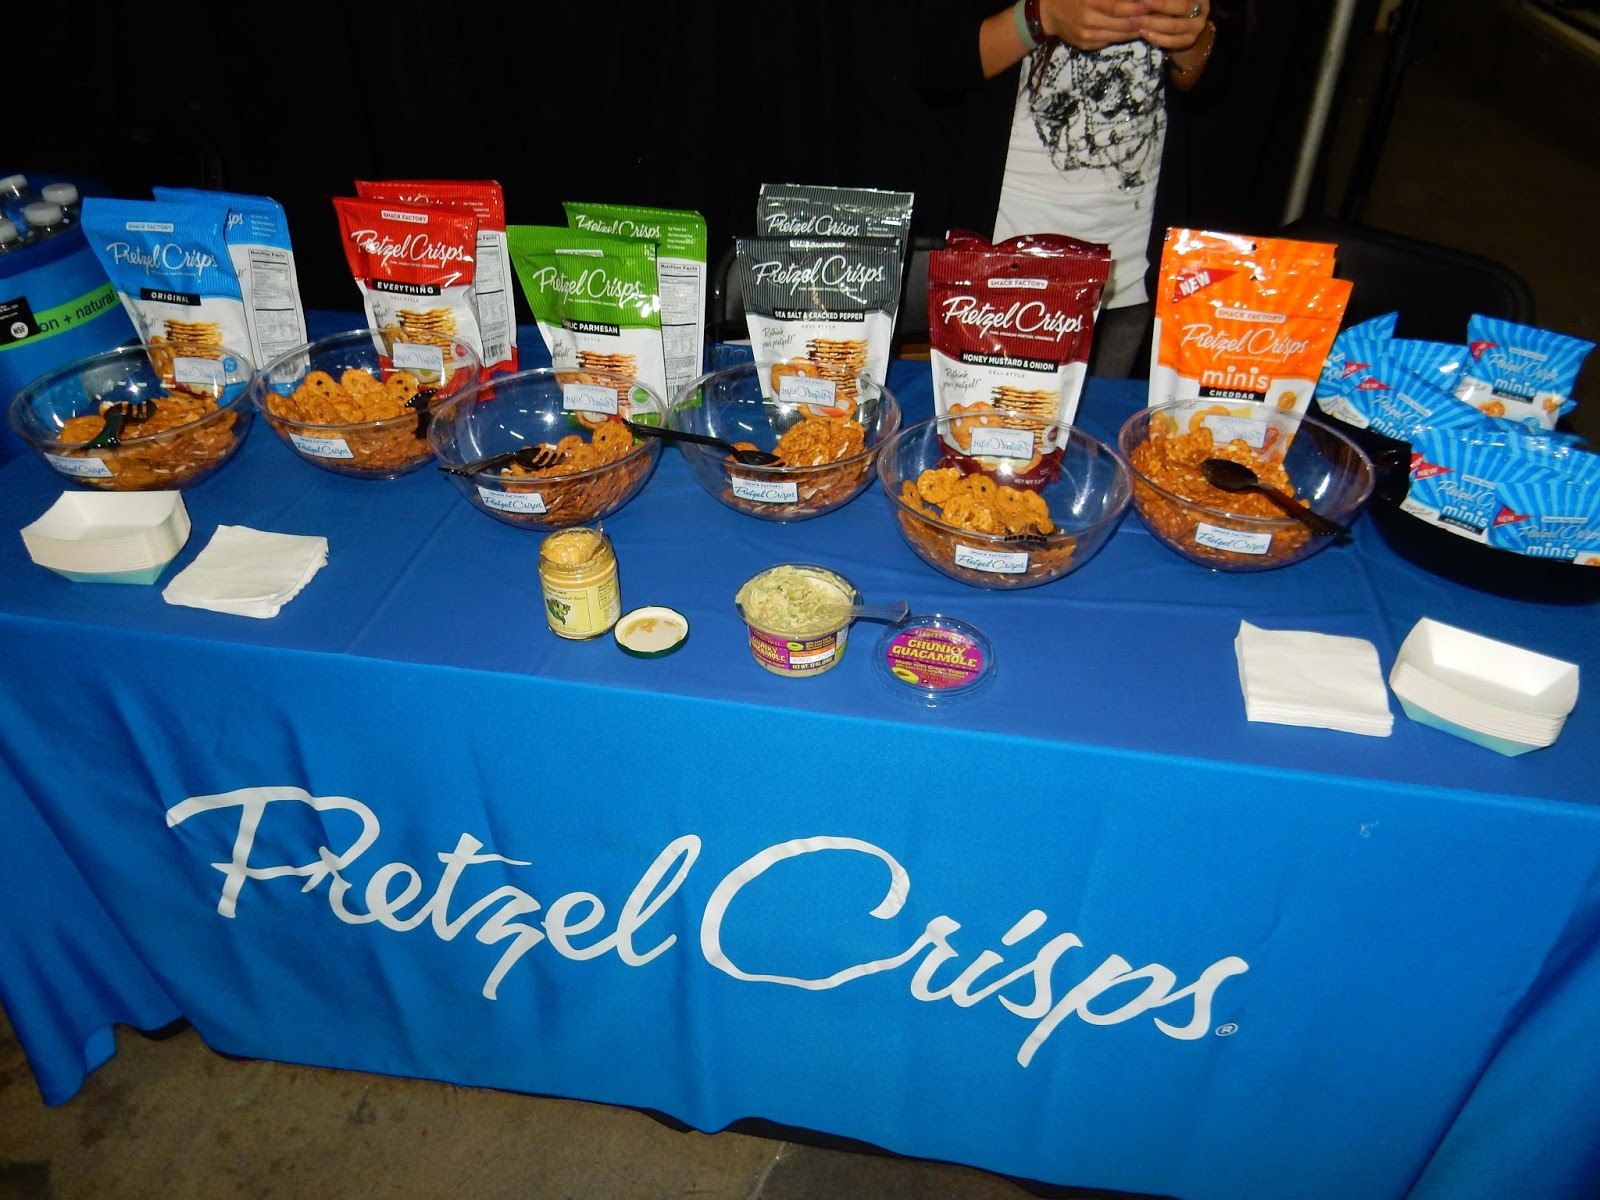 Gilt Los Angeles Shopping event pretzel chips